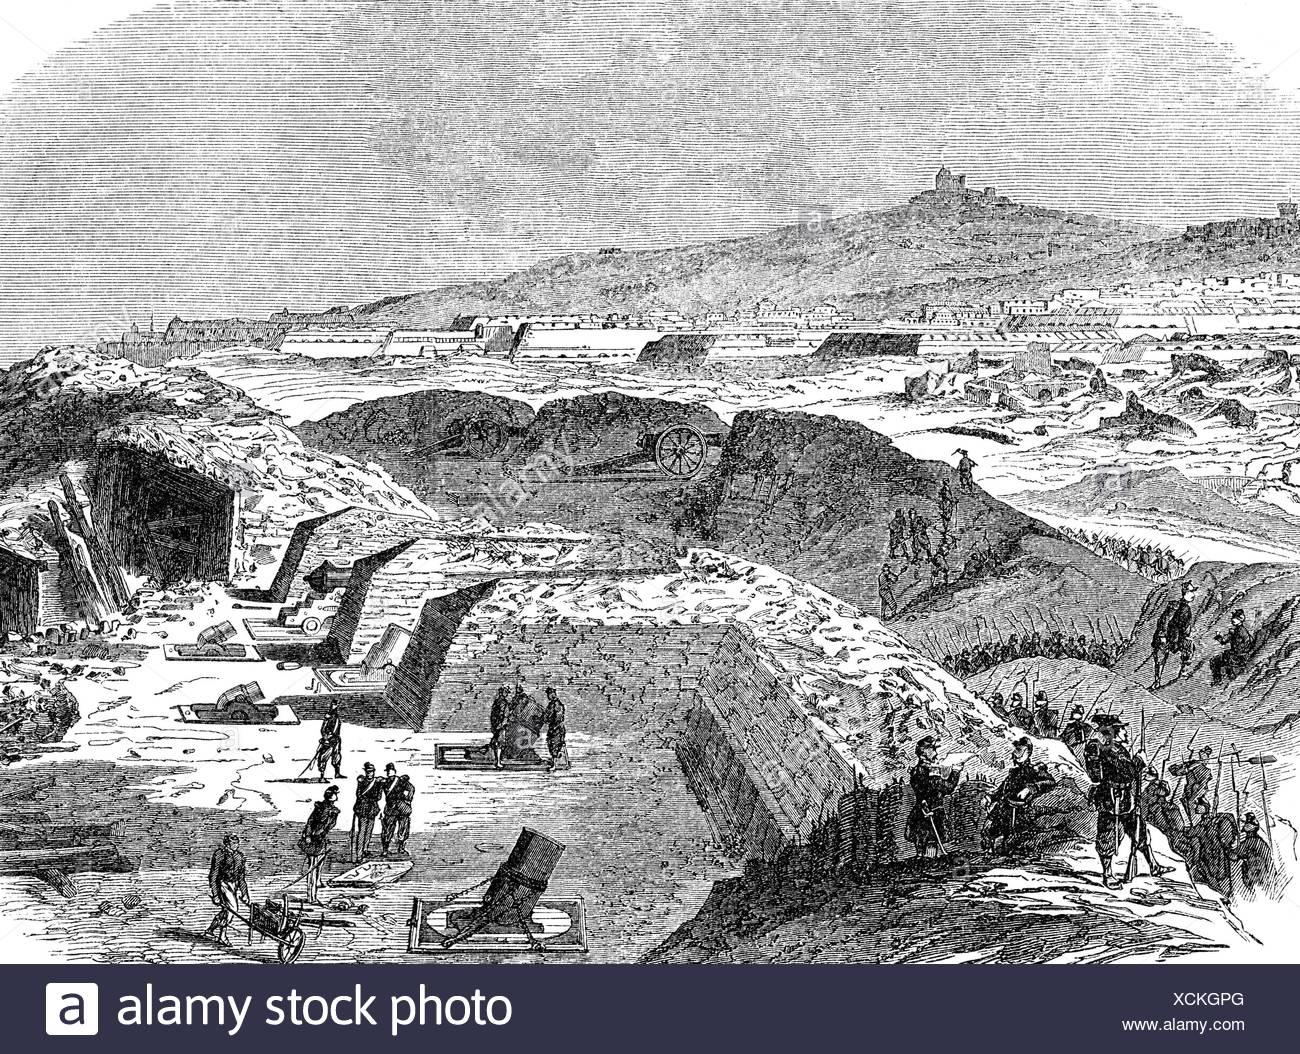 events-expedition-of-the-thousand-1860-siege-of-gaeta-5111860-1221861-wood-engraving-19th-century-XCKGPG.jpg